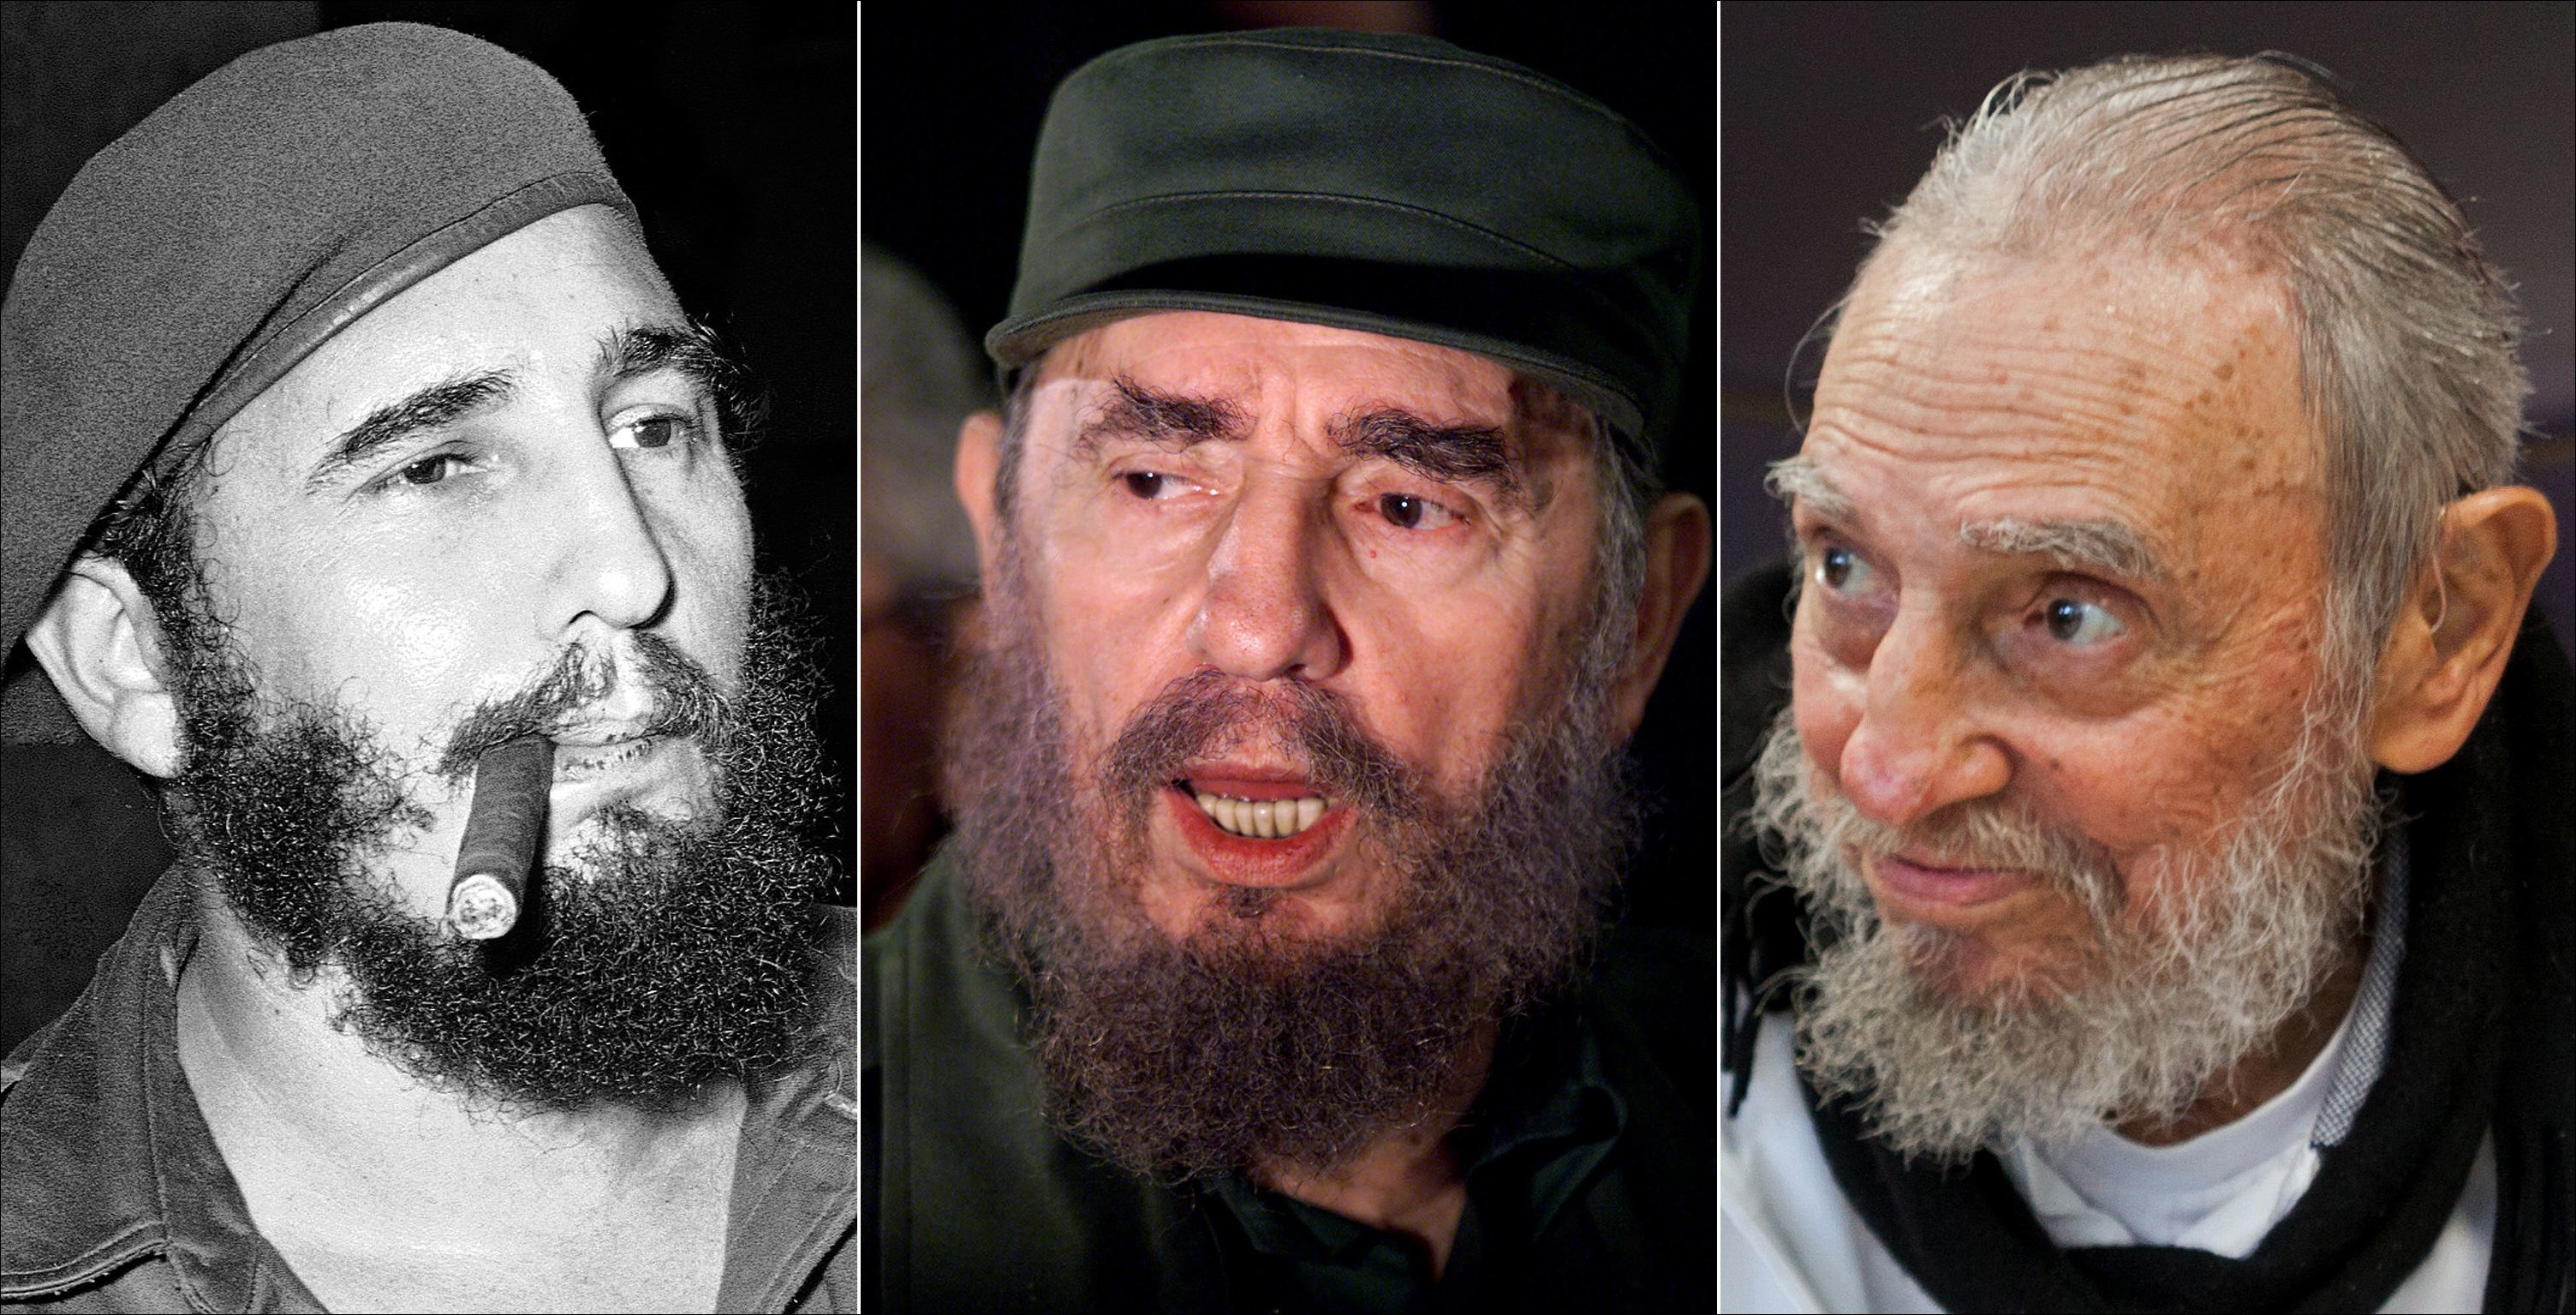 the rise of fidel castro to power in cuba and his influence over the decades